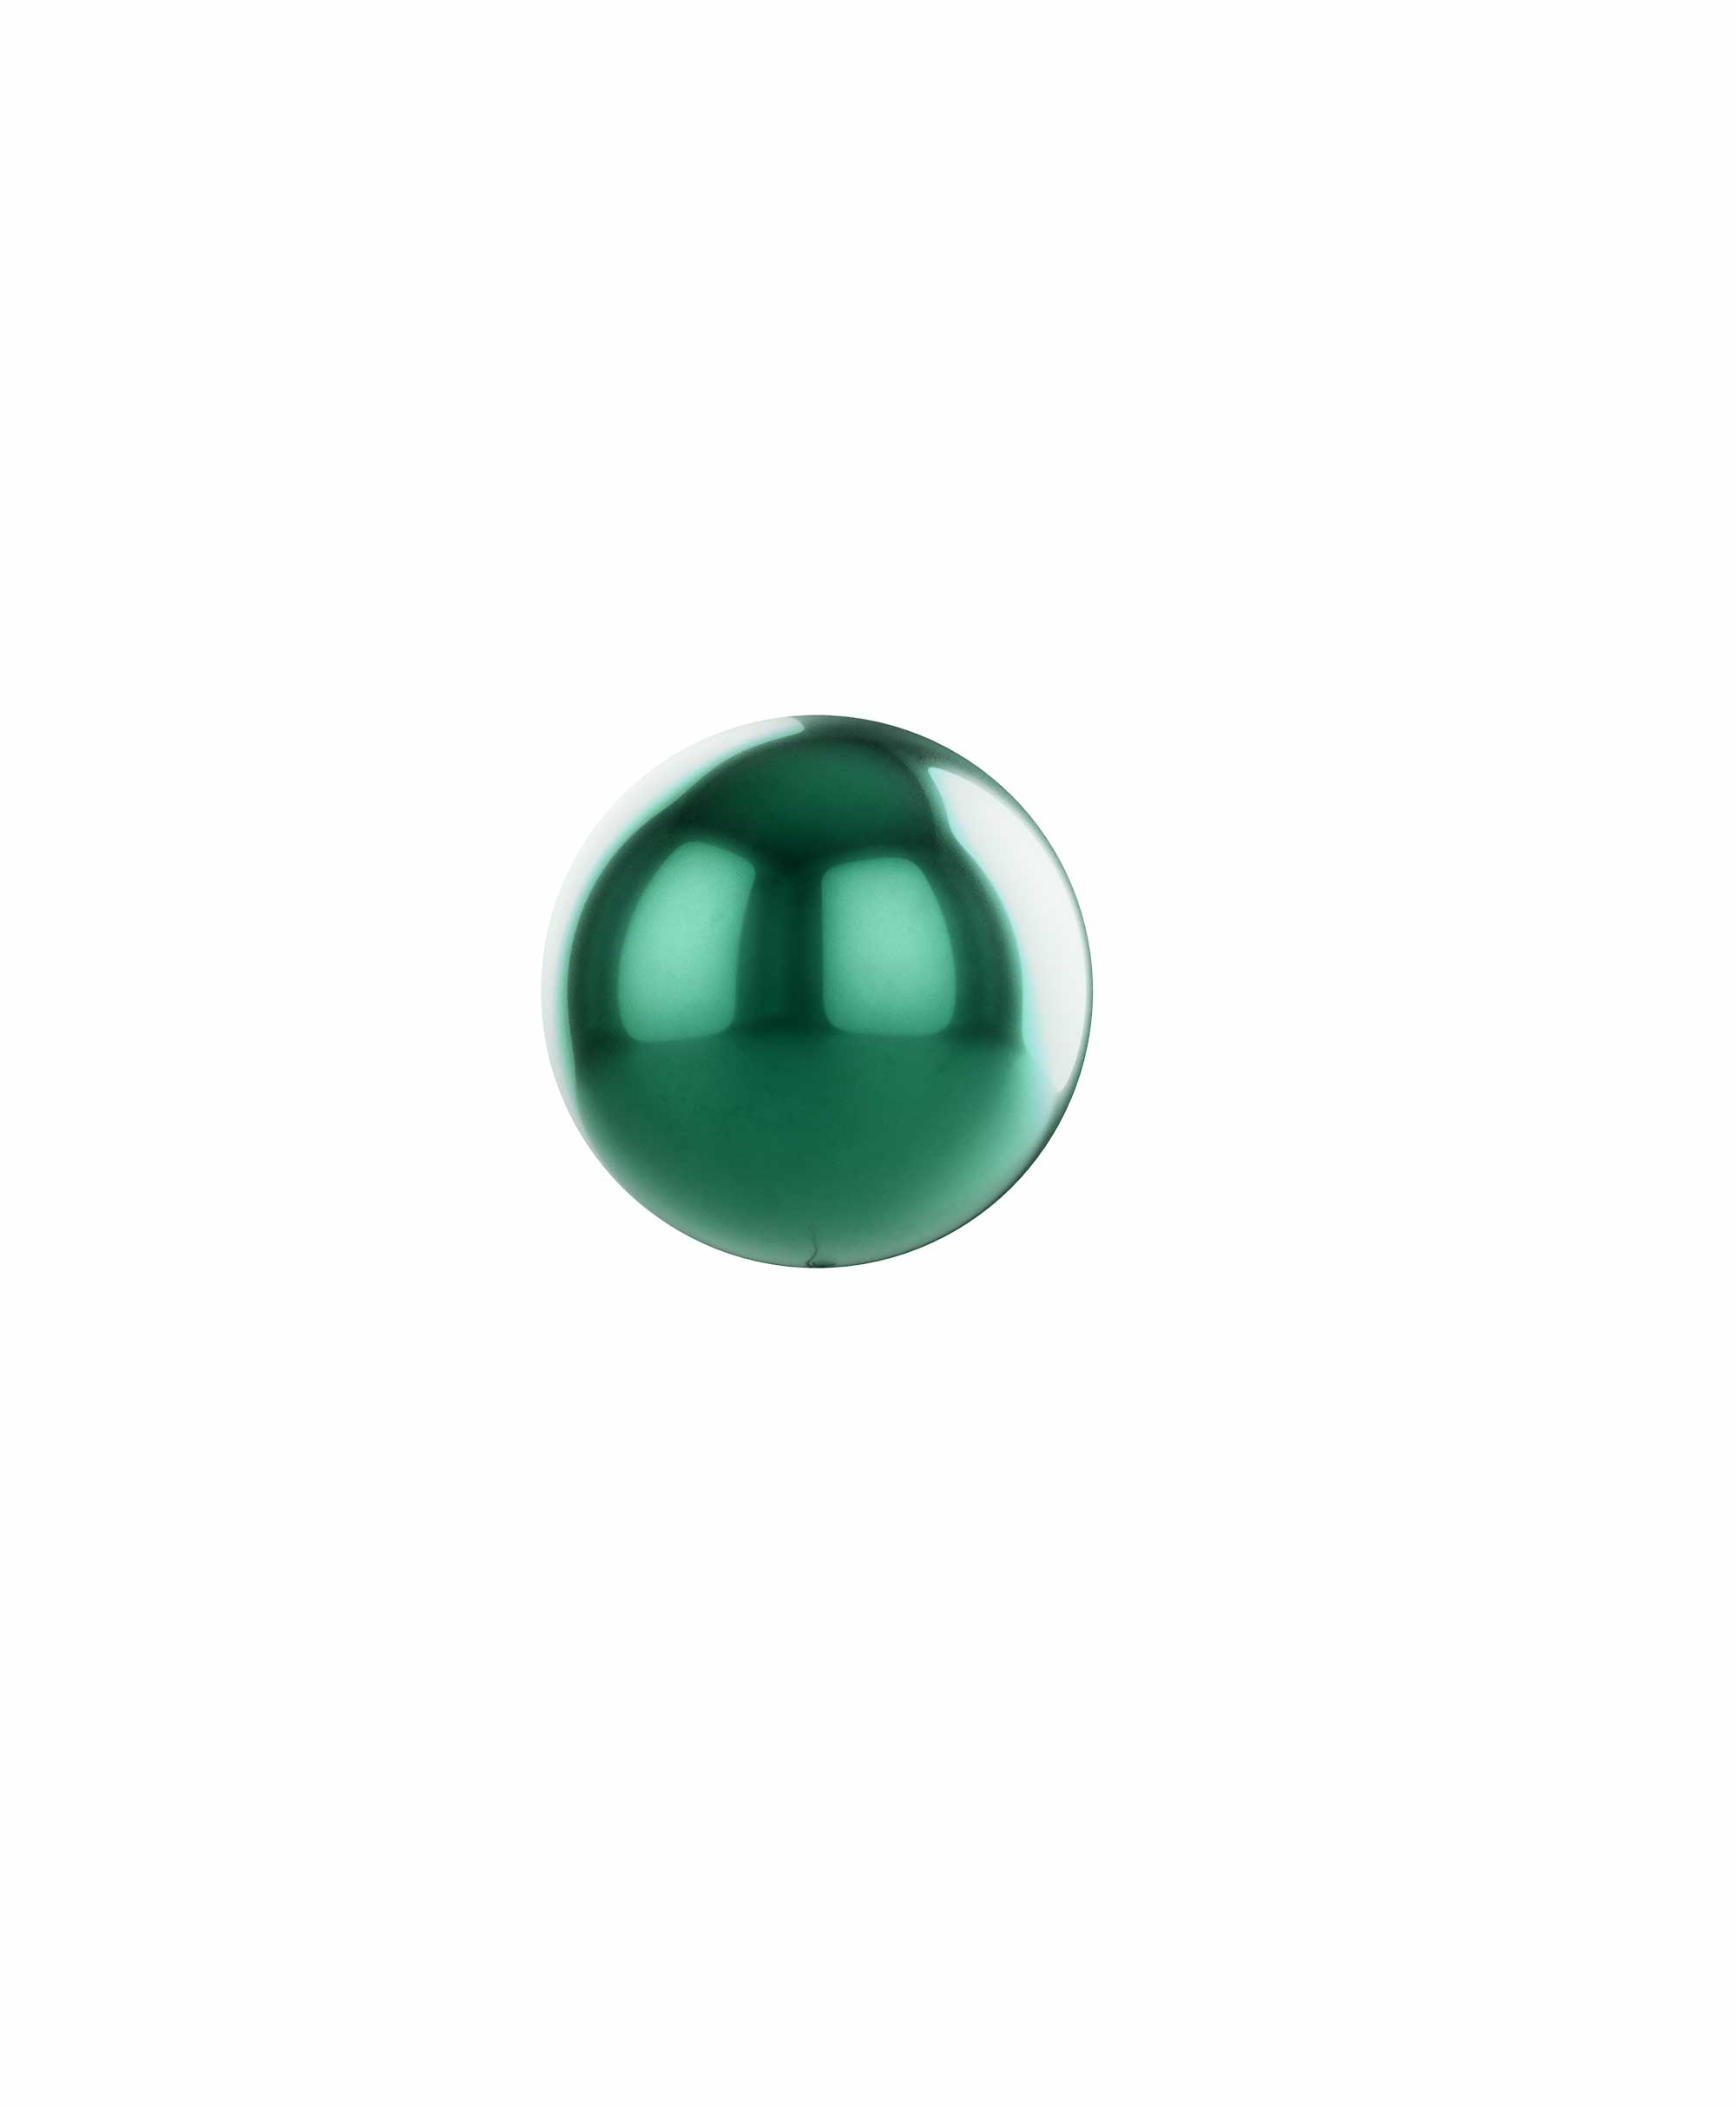 "Dark green balloon ball 10"" - Gum nut Theme"